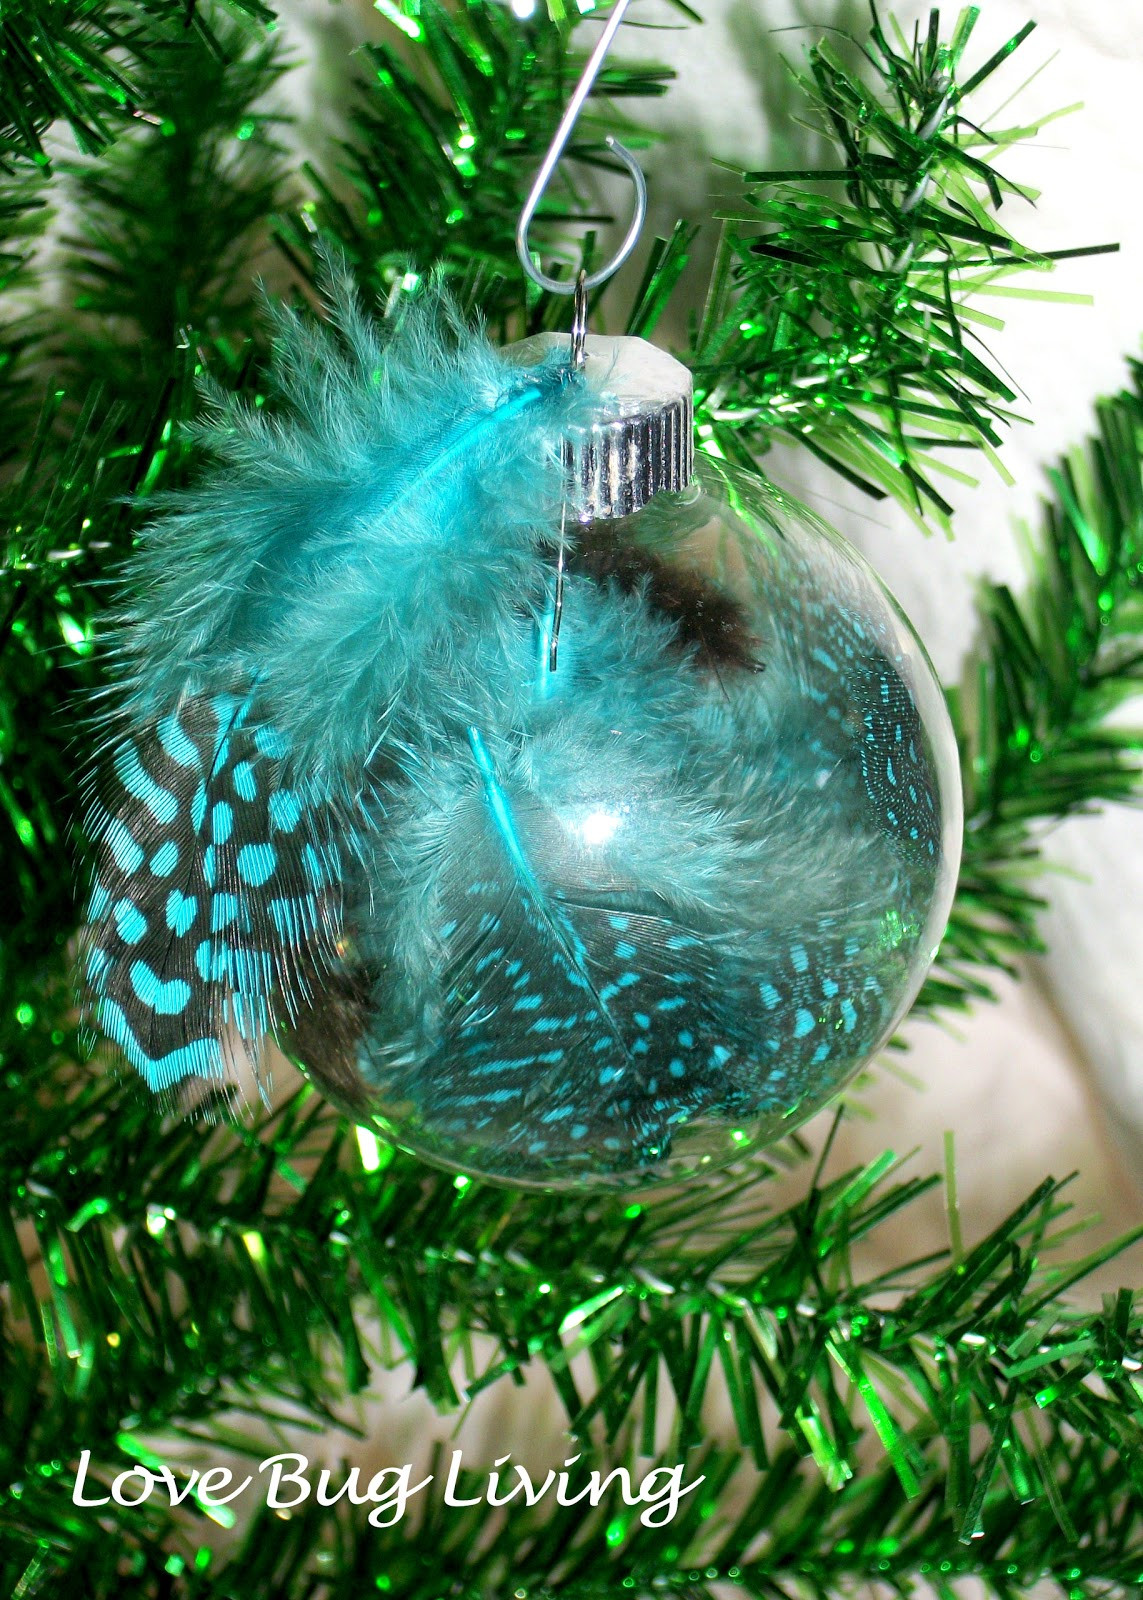 Glass ornament Balls Elegant Love Bug Living 12 Ways to Personalize Glass Ball ornaments Of Charming 49 Pictures Glass ornament Balls